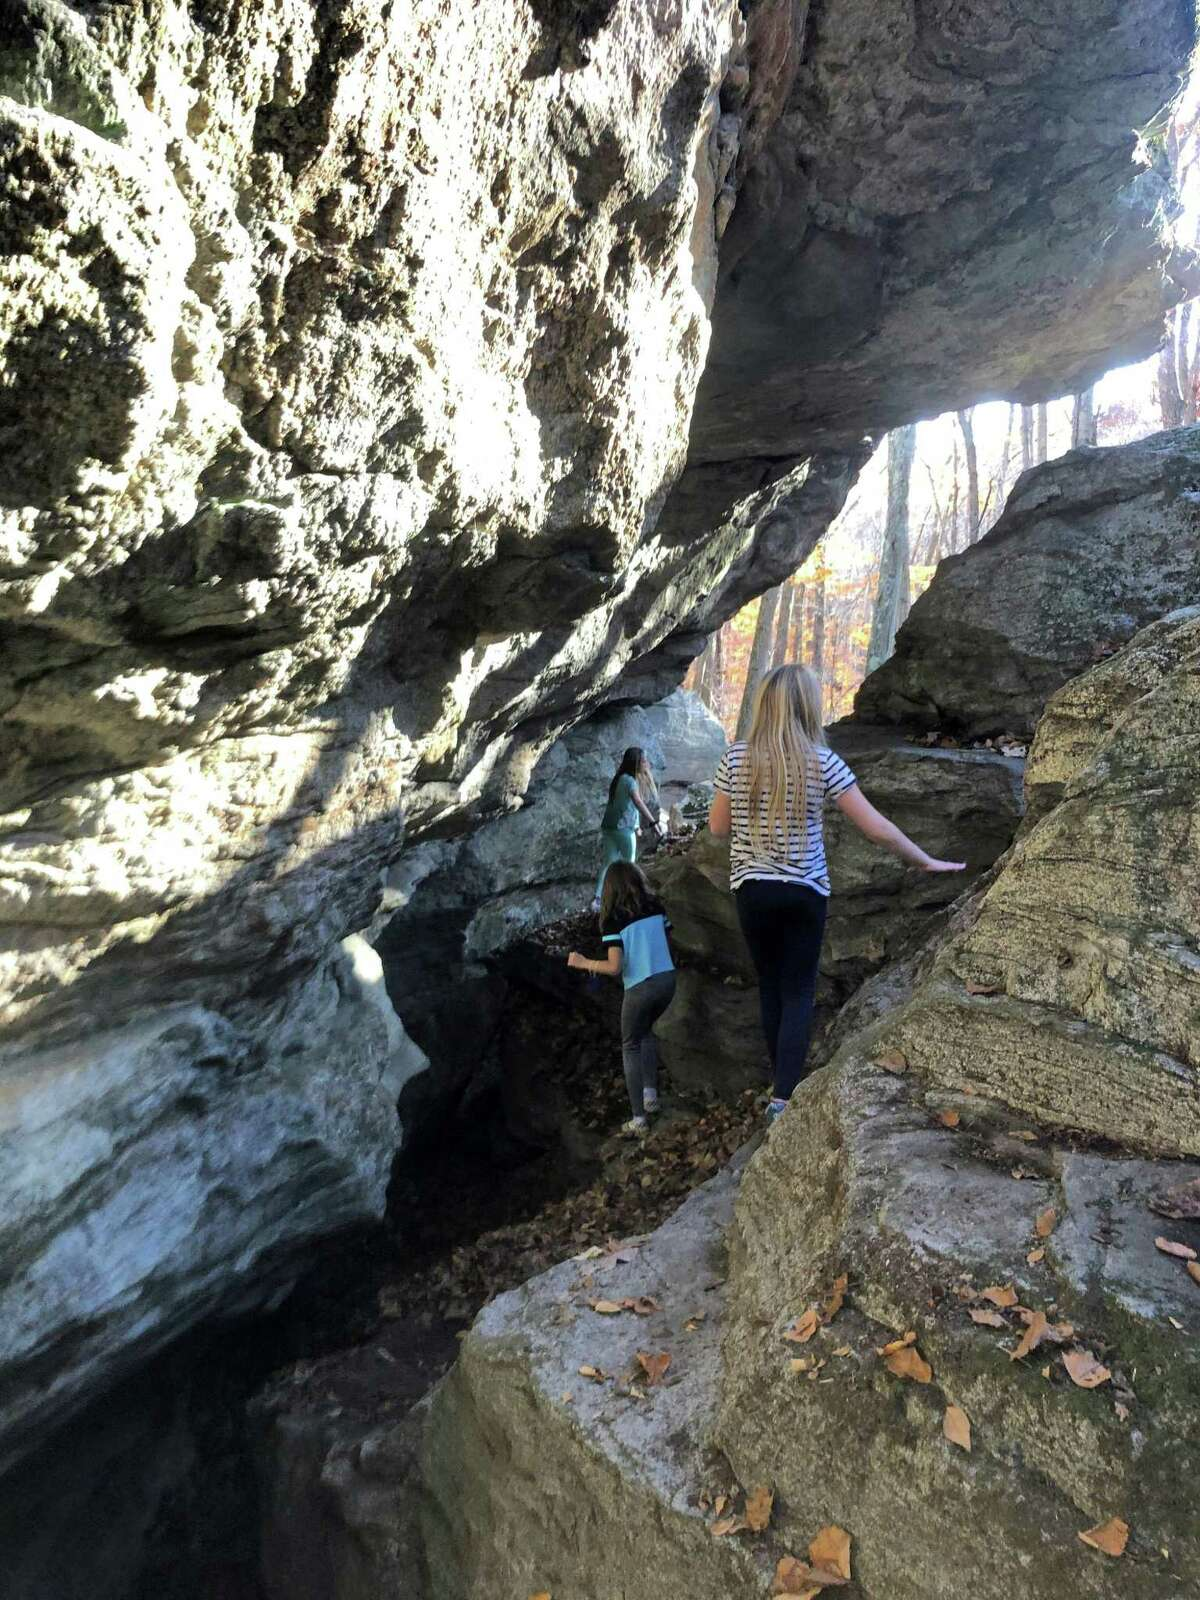 Children explore Fat Man's Queeze, a rock formation left over from a glacier.